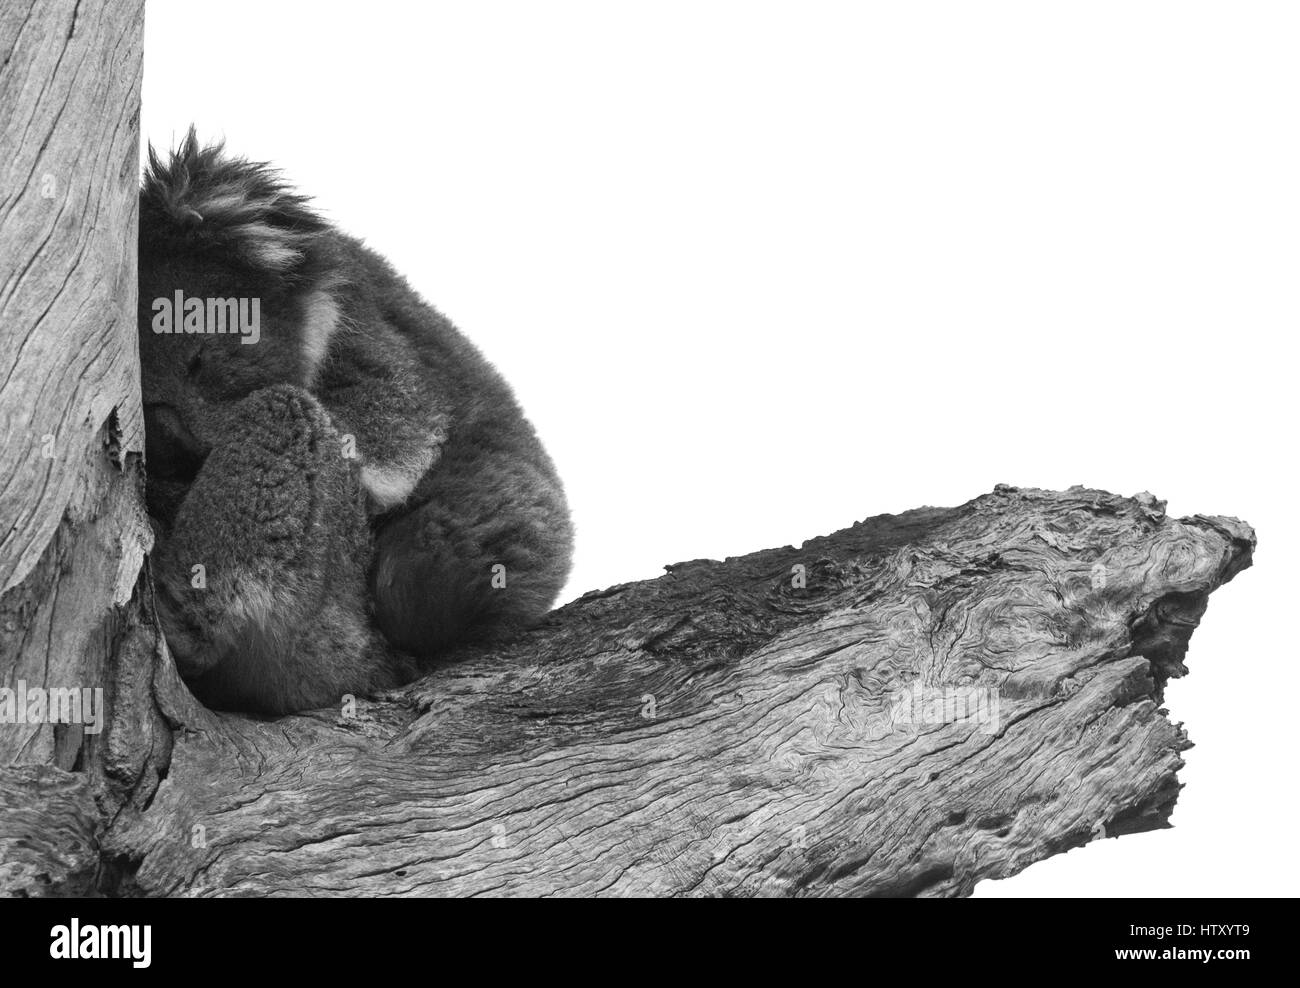 Koala (Phascolarctos cinereus) Stock Photo